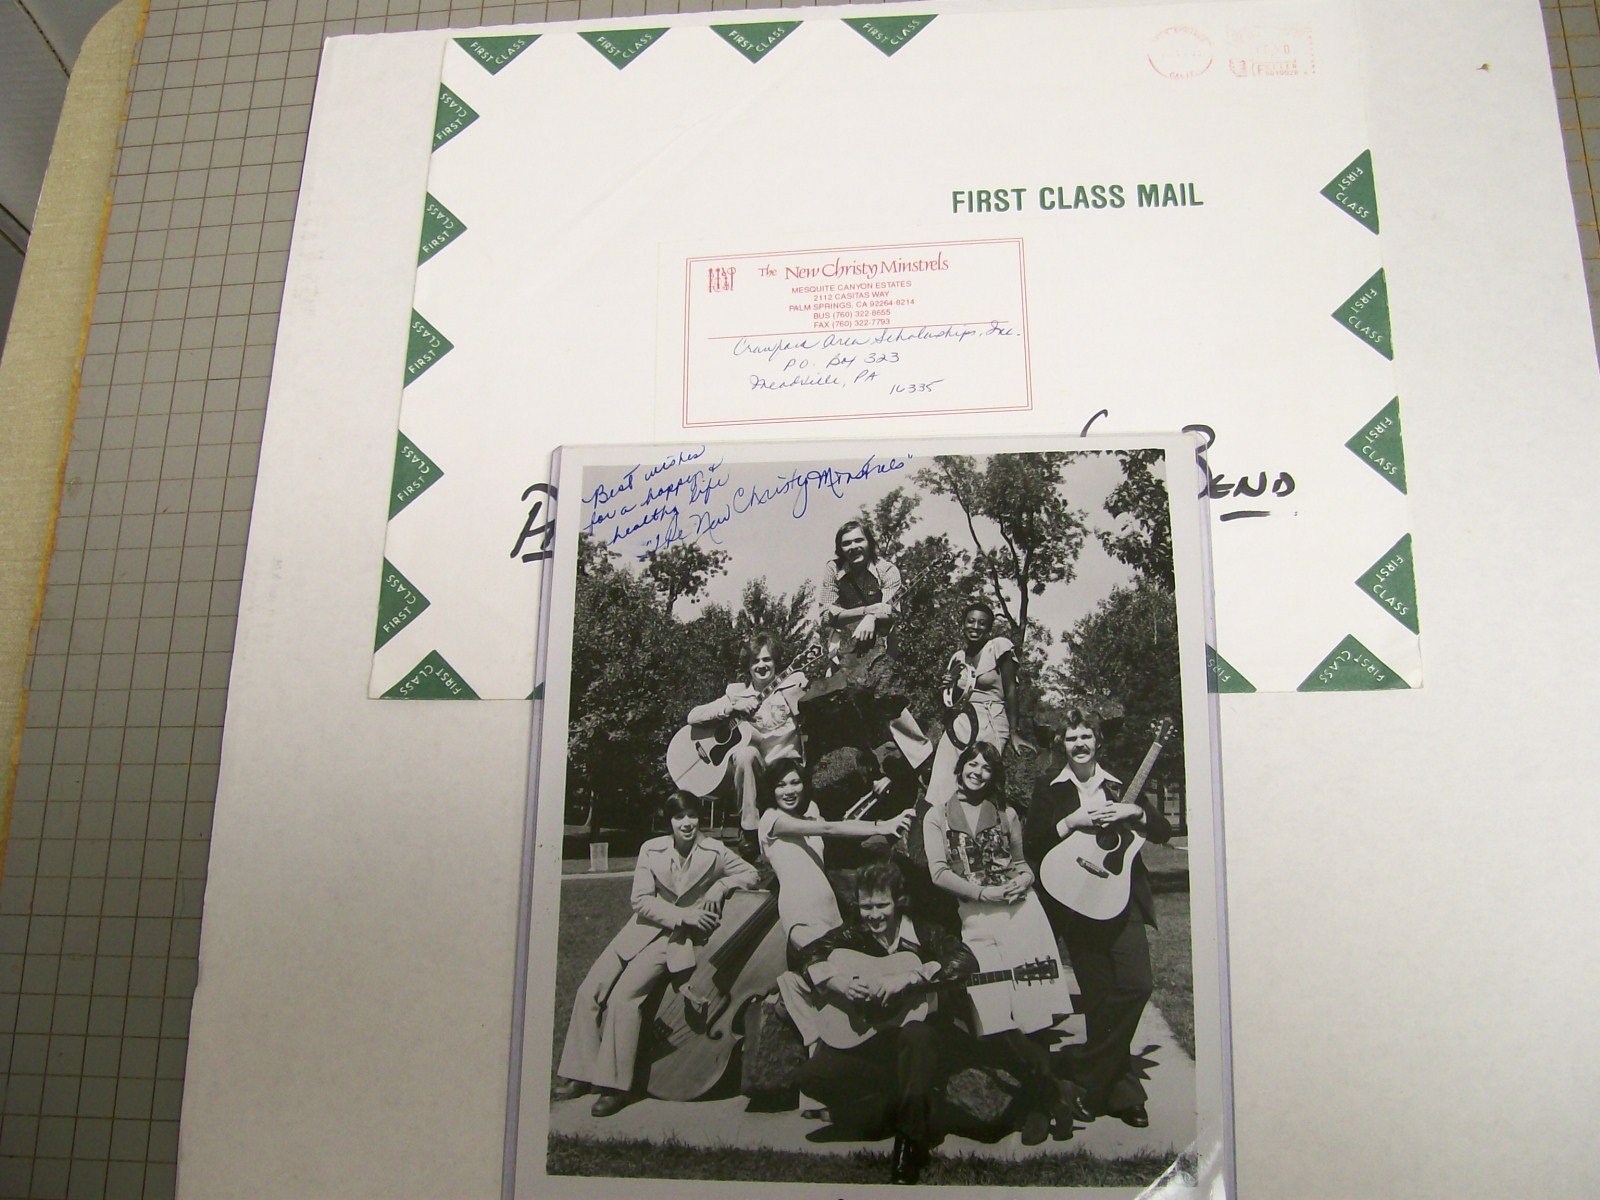 THE NEW CRHISTY MINSTRELS SIGNED by 8 PHOTO